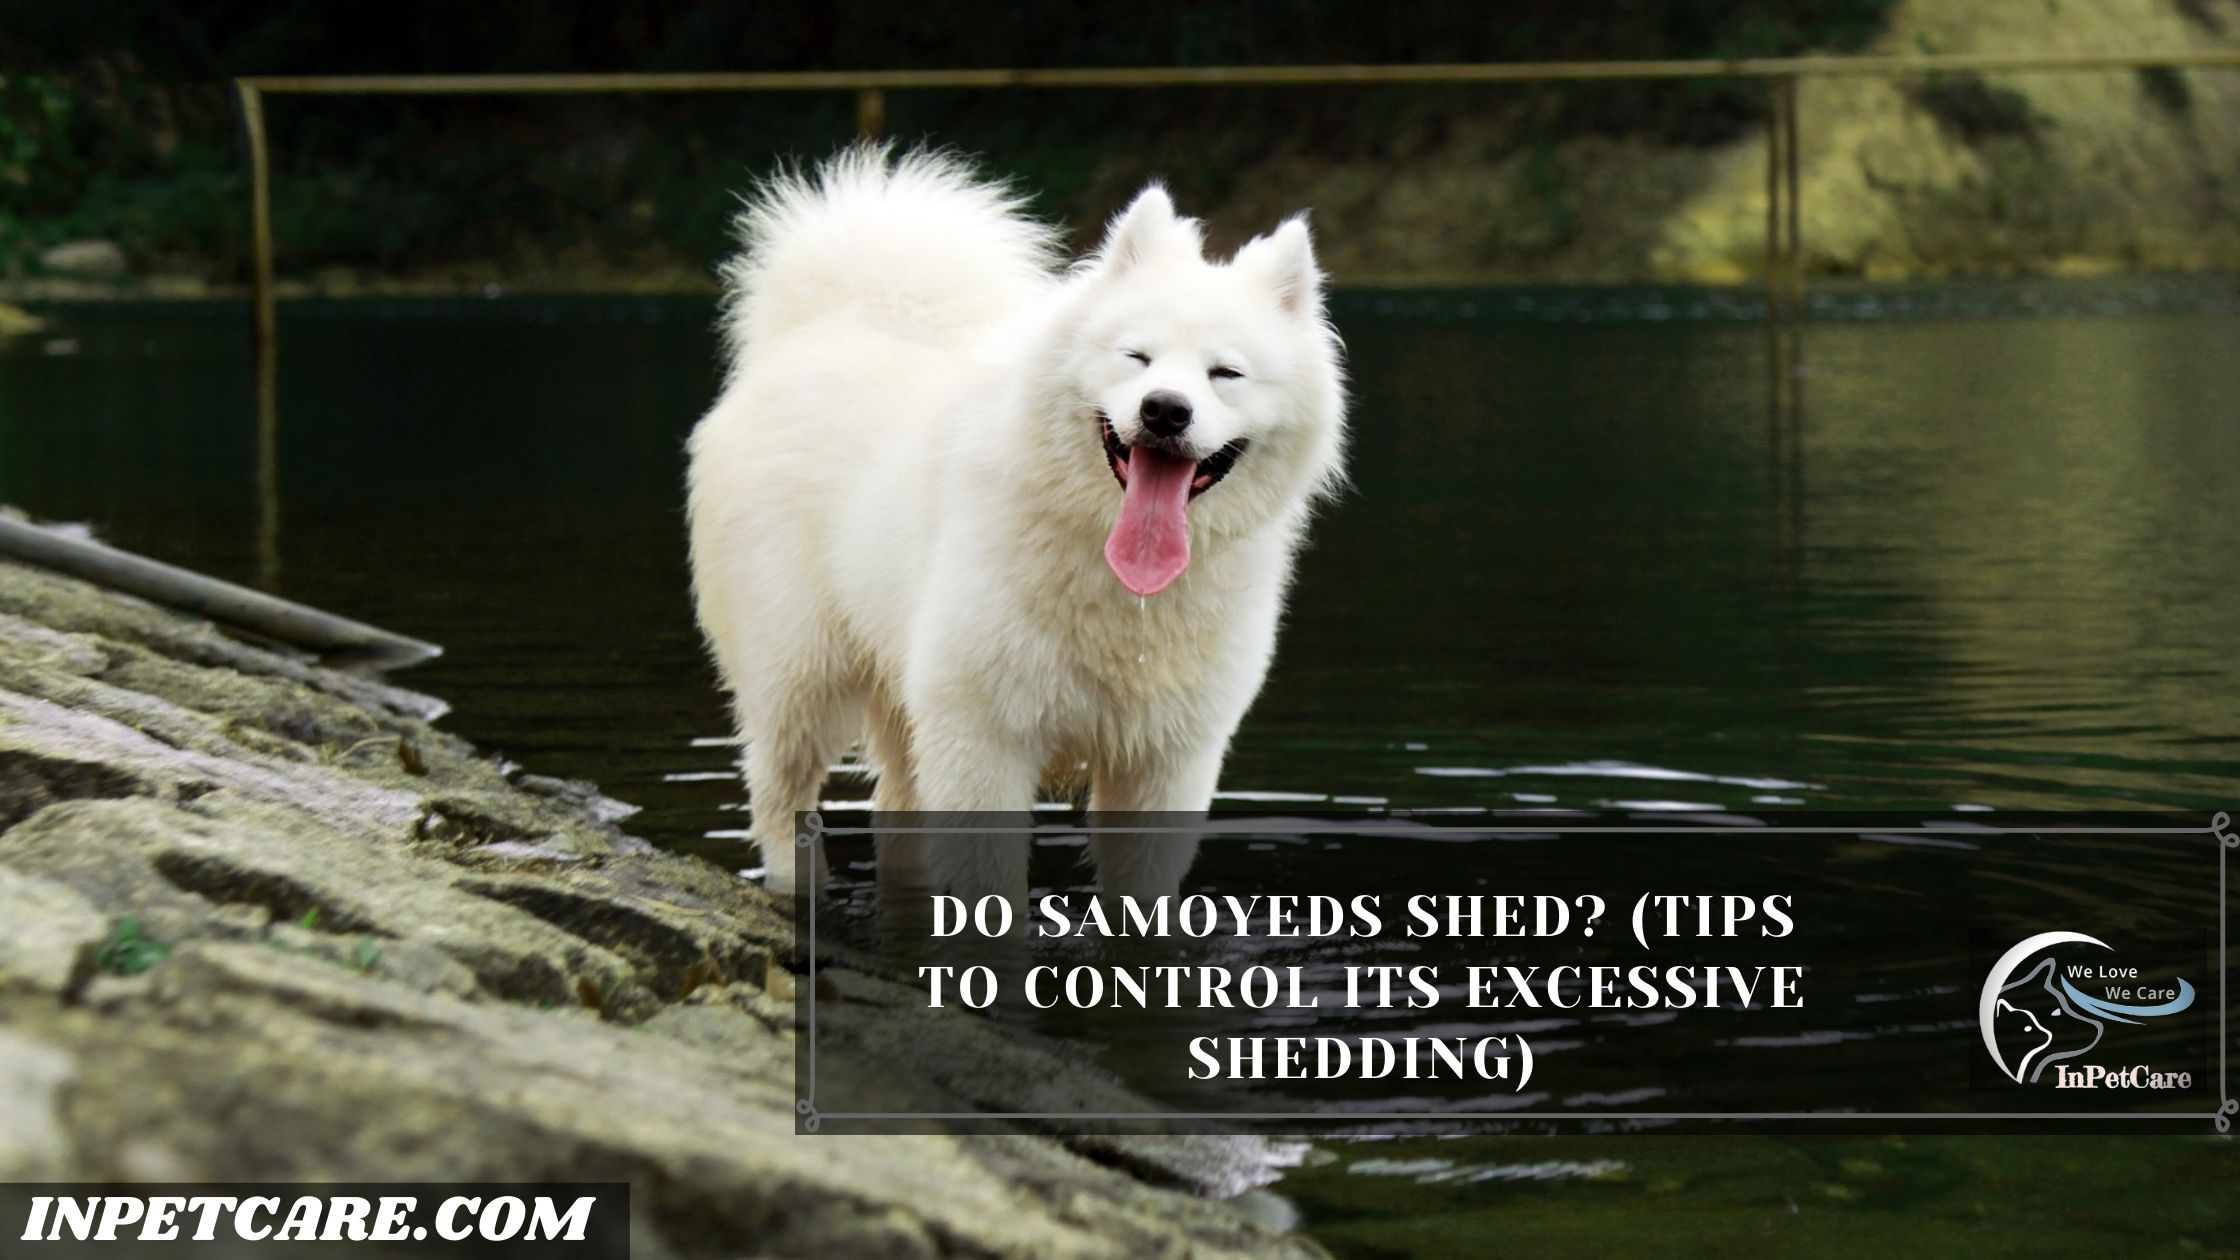 Do Samoyeds Shed? (Tips To Control Its Excessive Shedding)